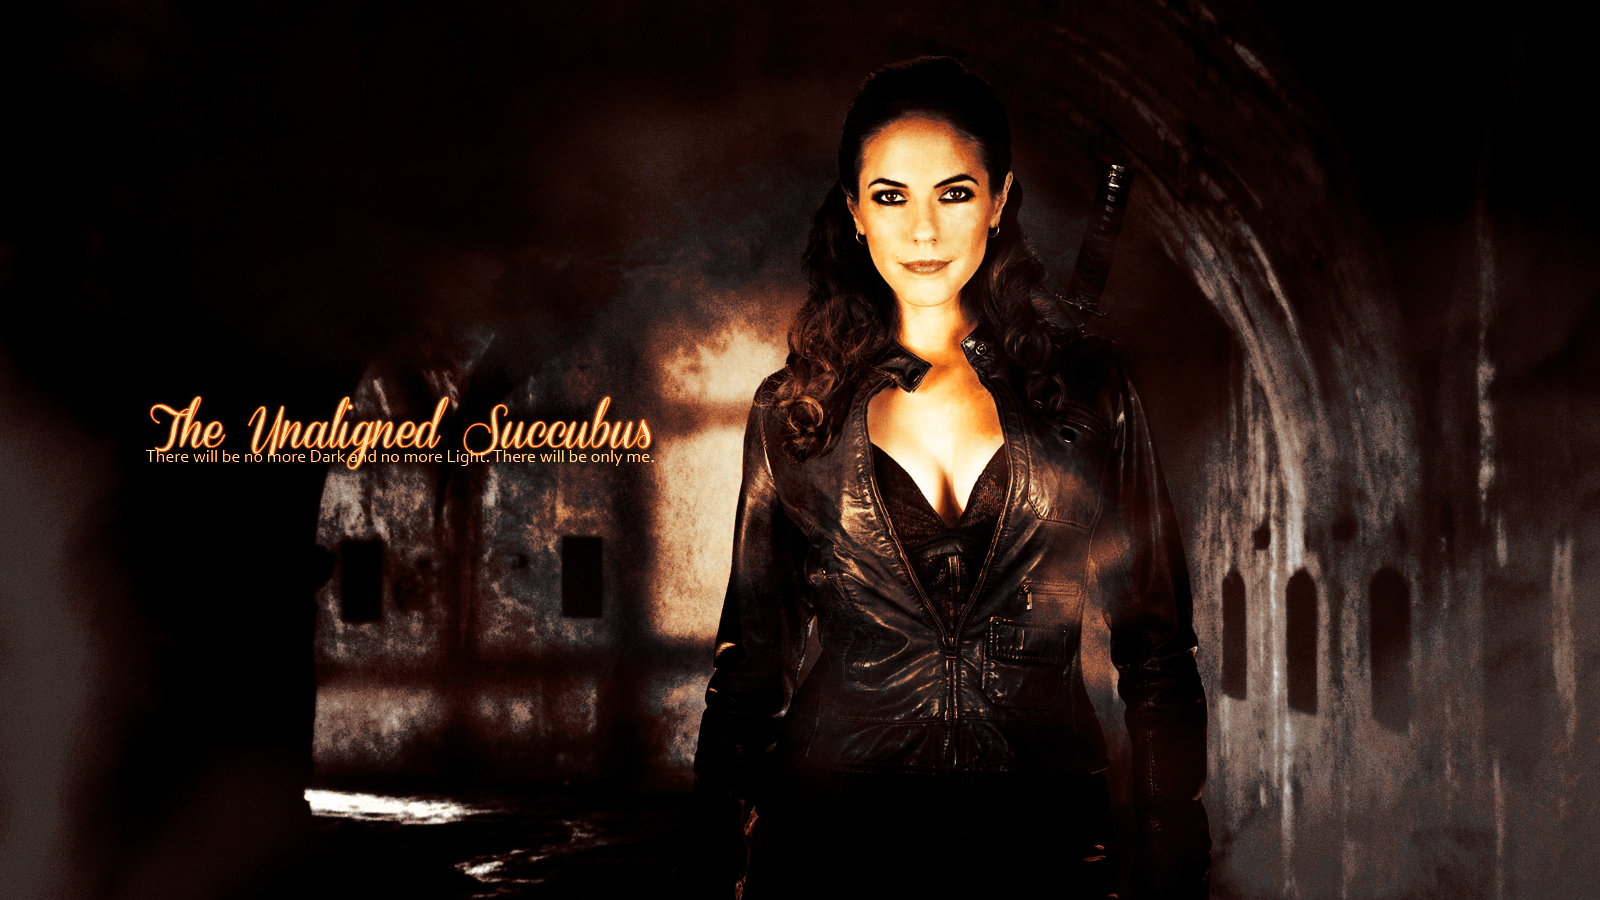 succubus backgrounds and images - photo #29